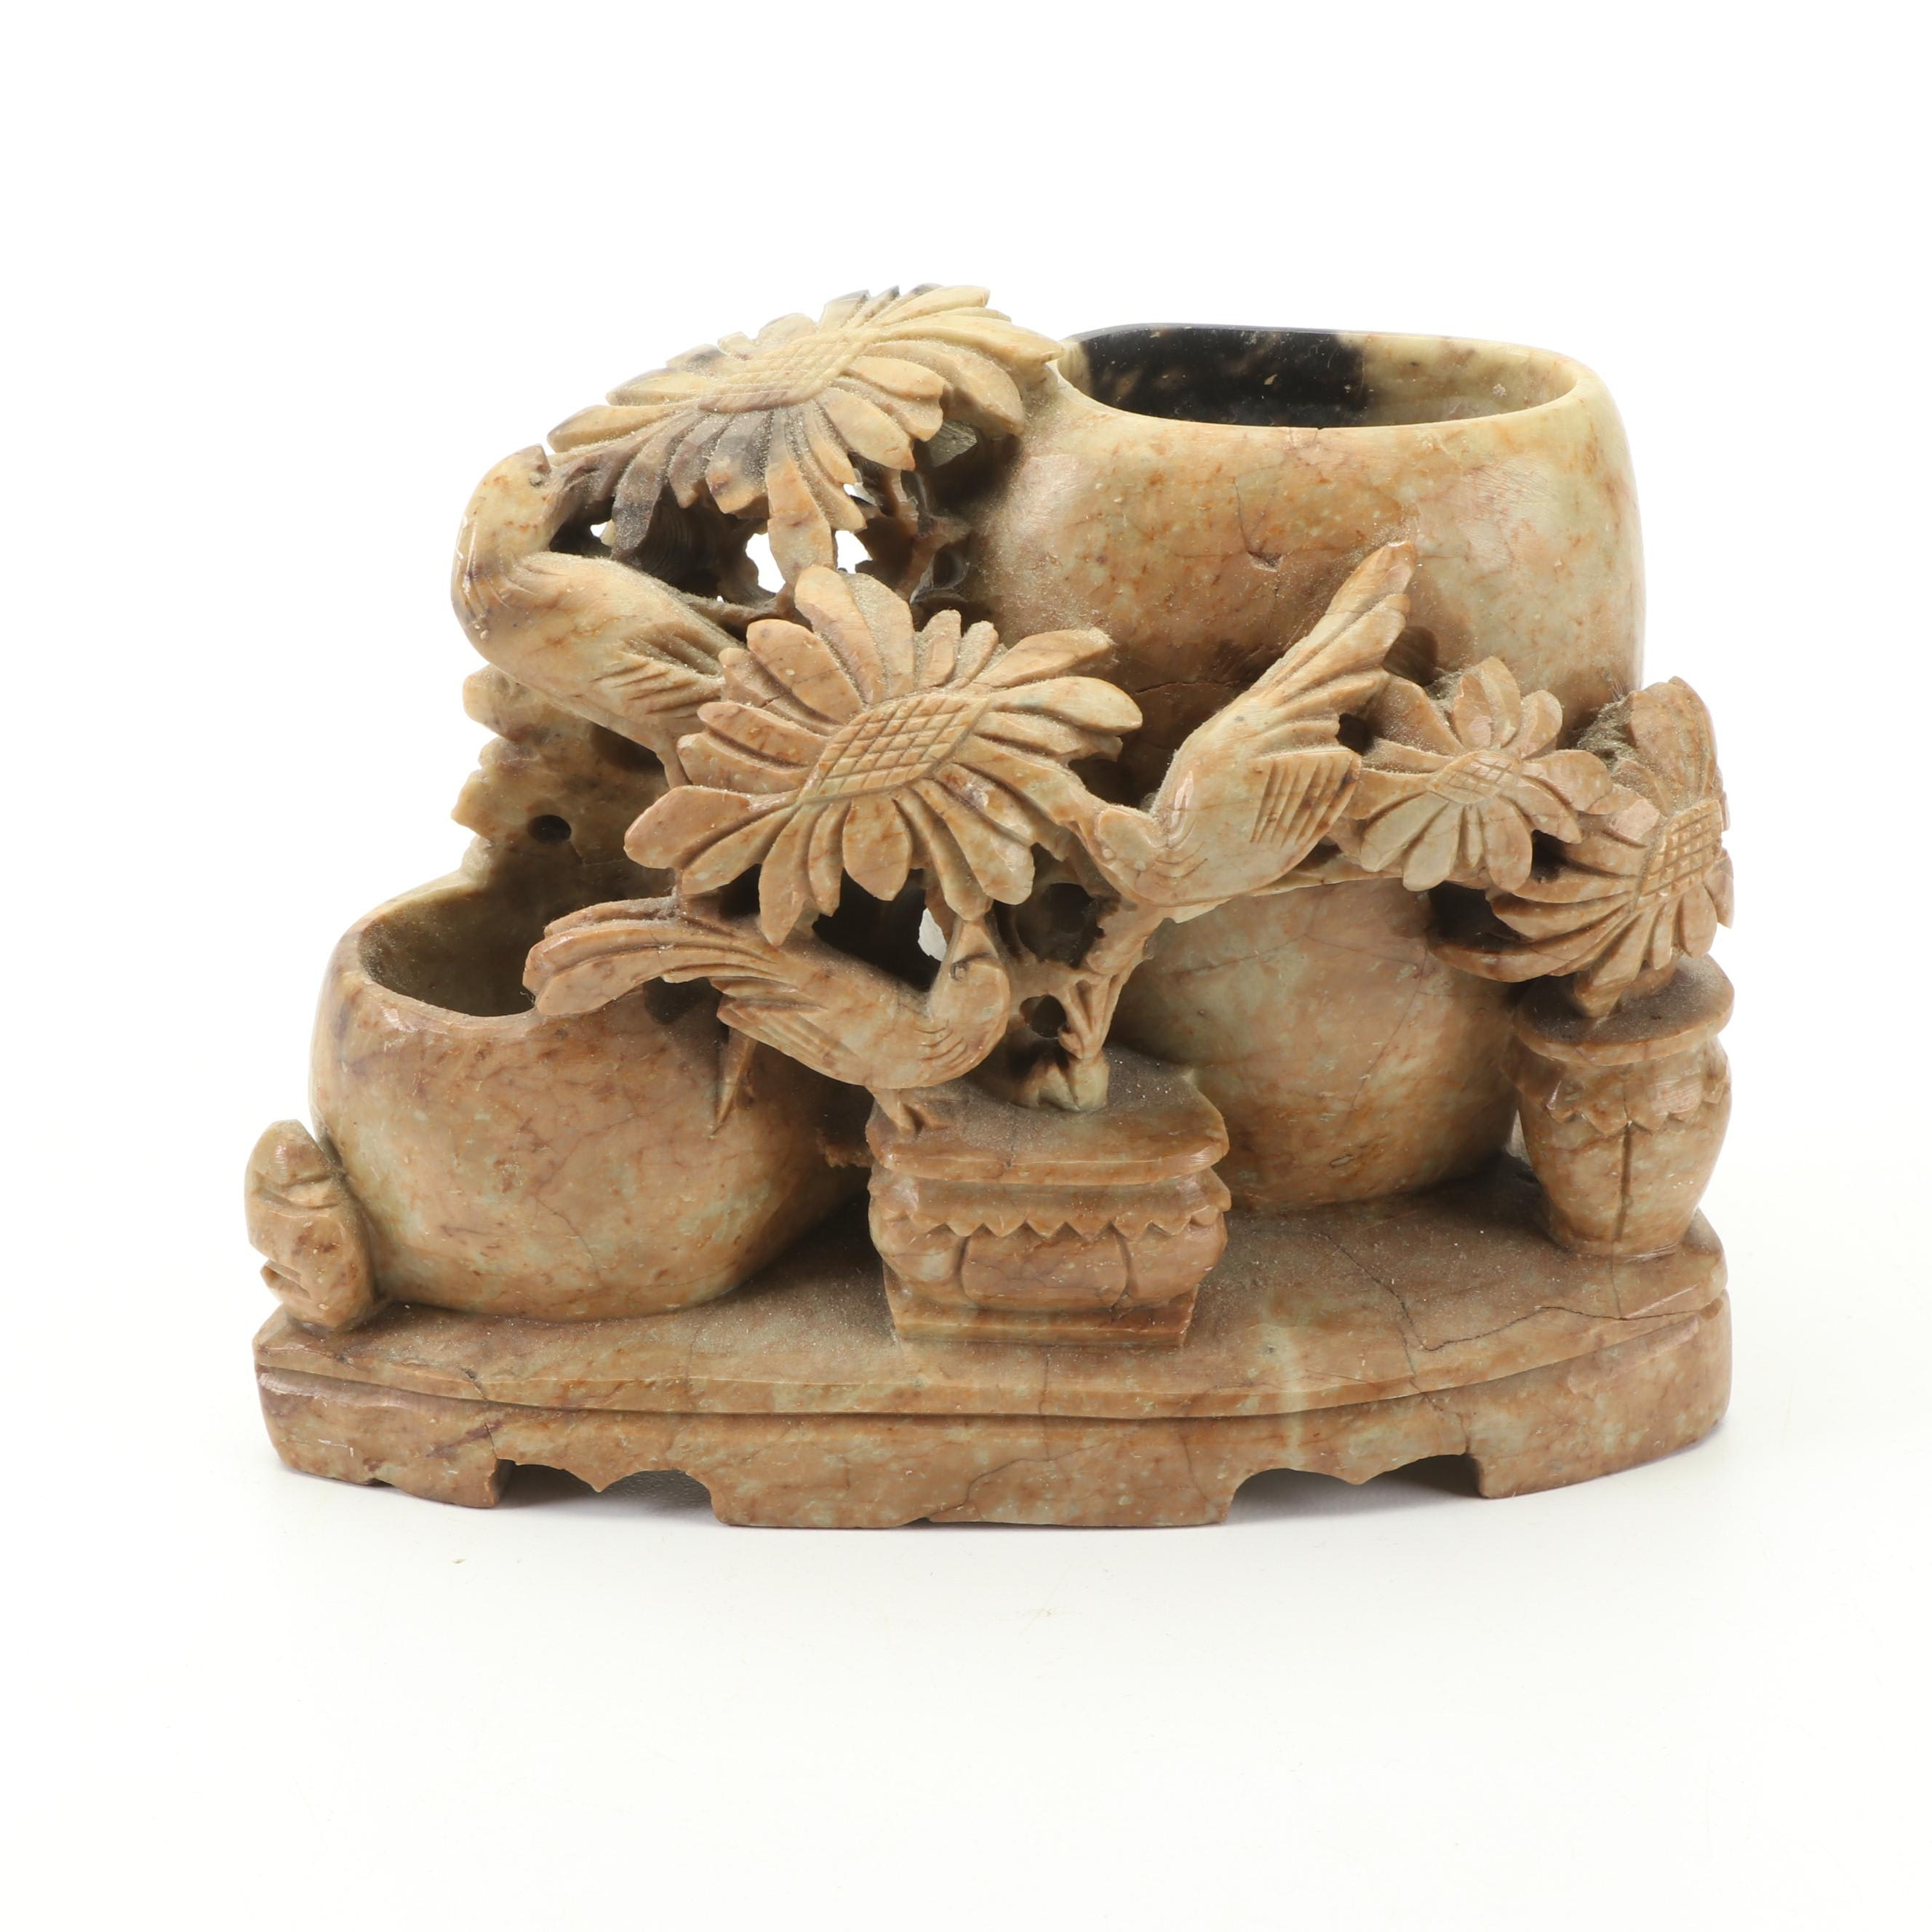 Small Carved Soapstone Vase with Bird and Flower Motif